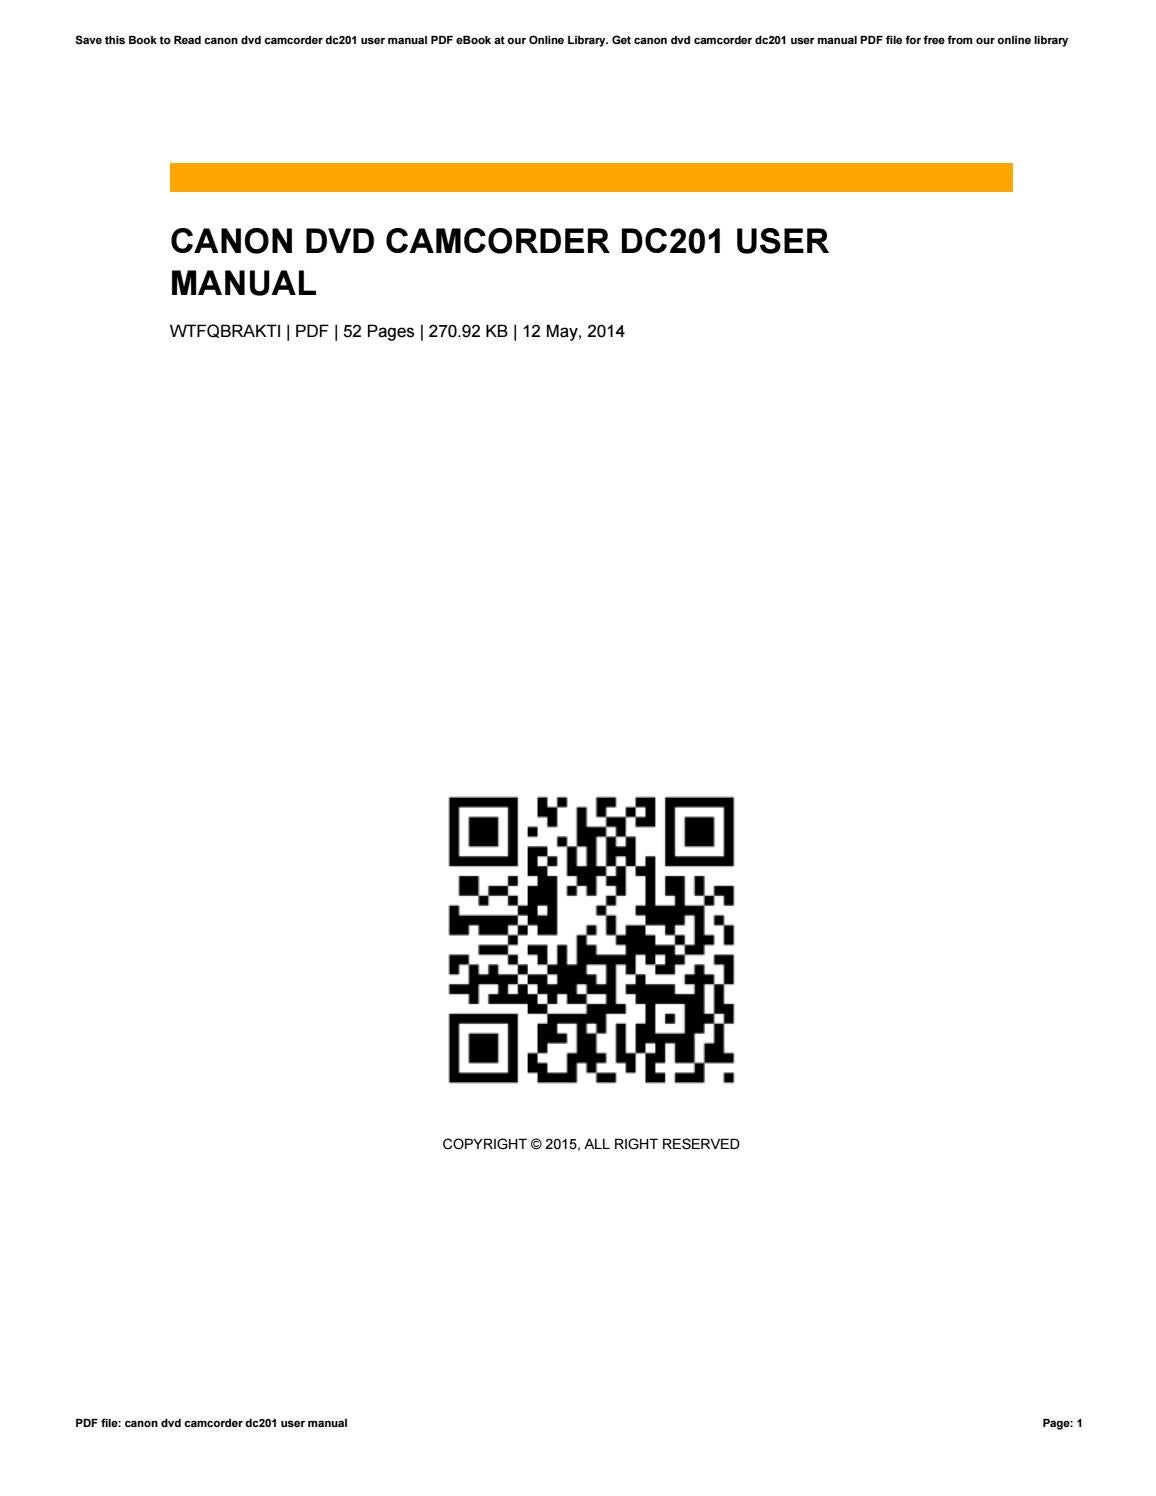 CANON DC201 MANUAL PDF